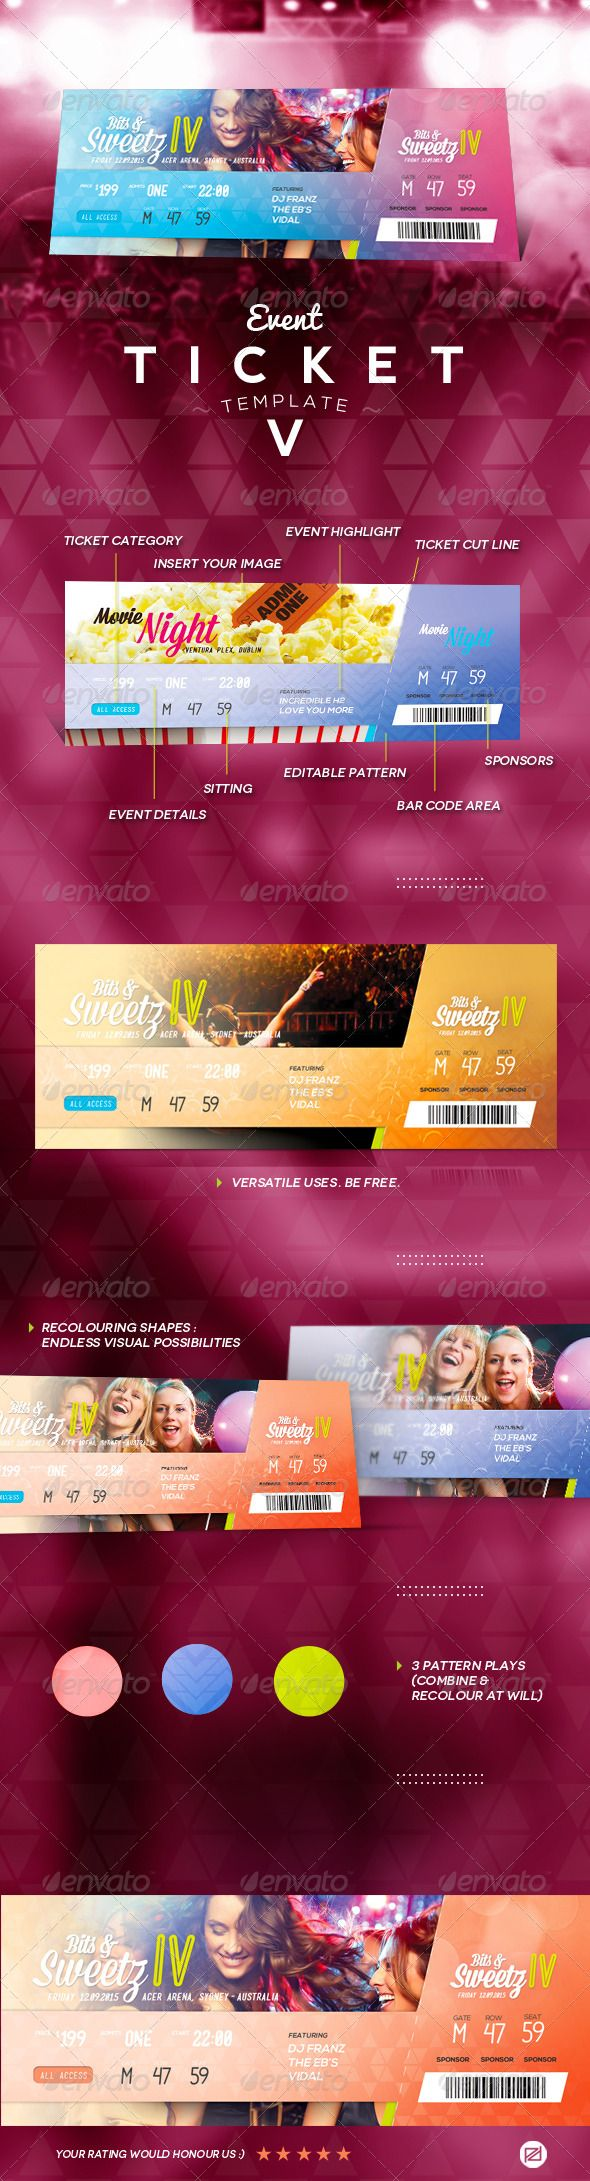 Event Ticket Template PSD. Download here: https://graphicriver.net/item/event-ticket-template-v/7660664?ref=ksioks